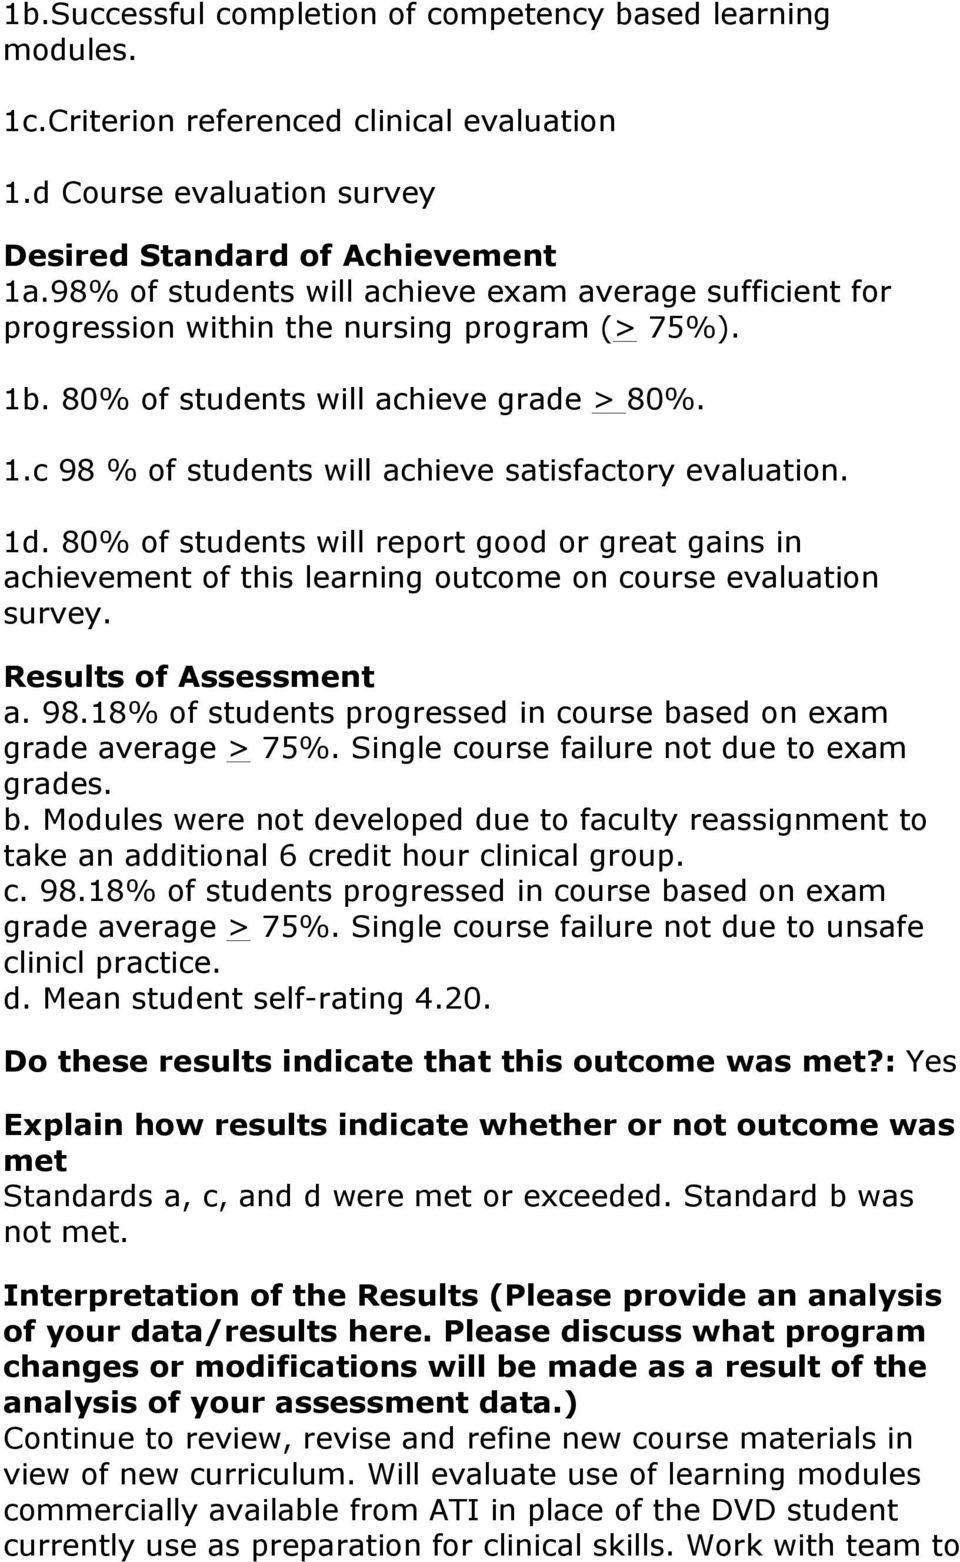 1d. 80% of students will report good or great gains in achievement of this learning outcome on course evaluation survey. a. 98.18% of students progressed in course based on exam grade average > 75%.